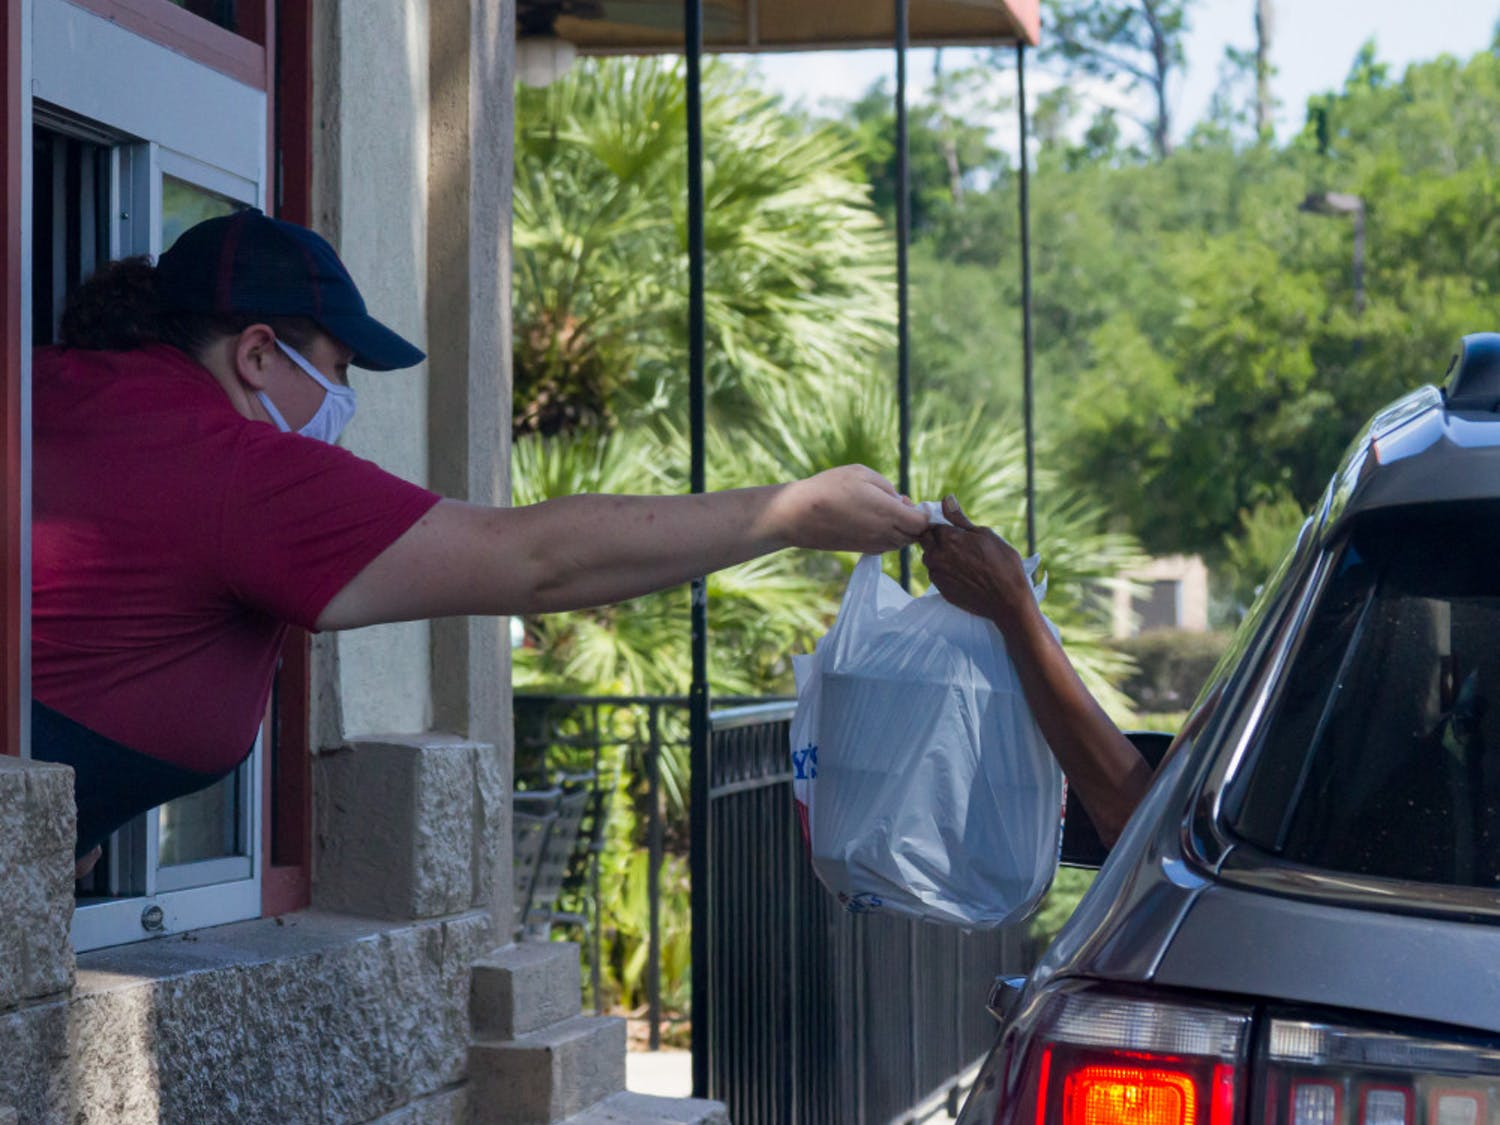 A global pandemic does not stop fast-food businesses. As drive-thrus continue to overflow with customers, workers continue to provide.